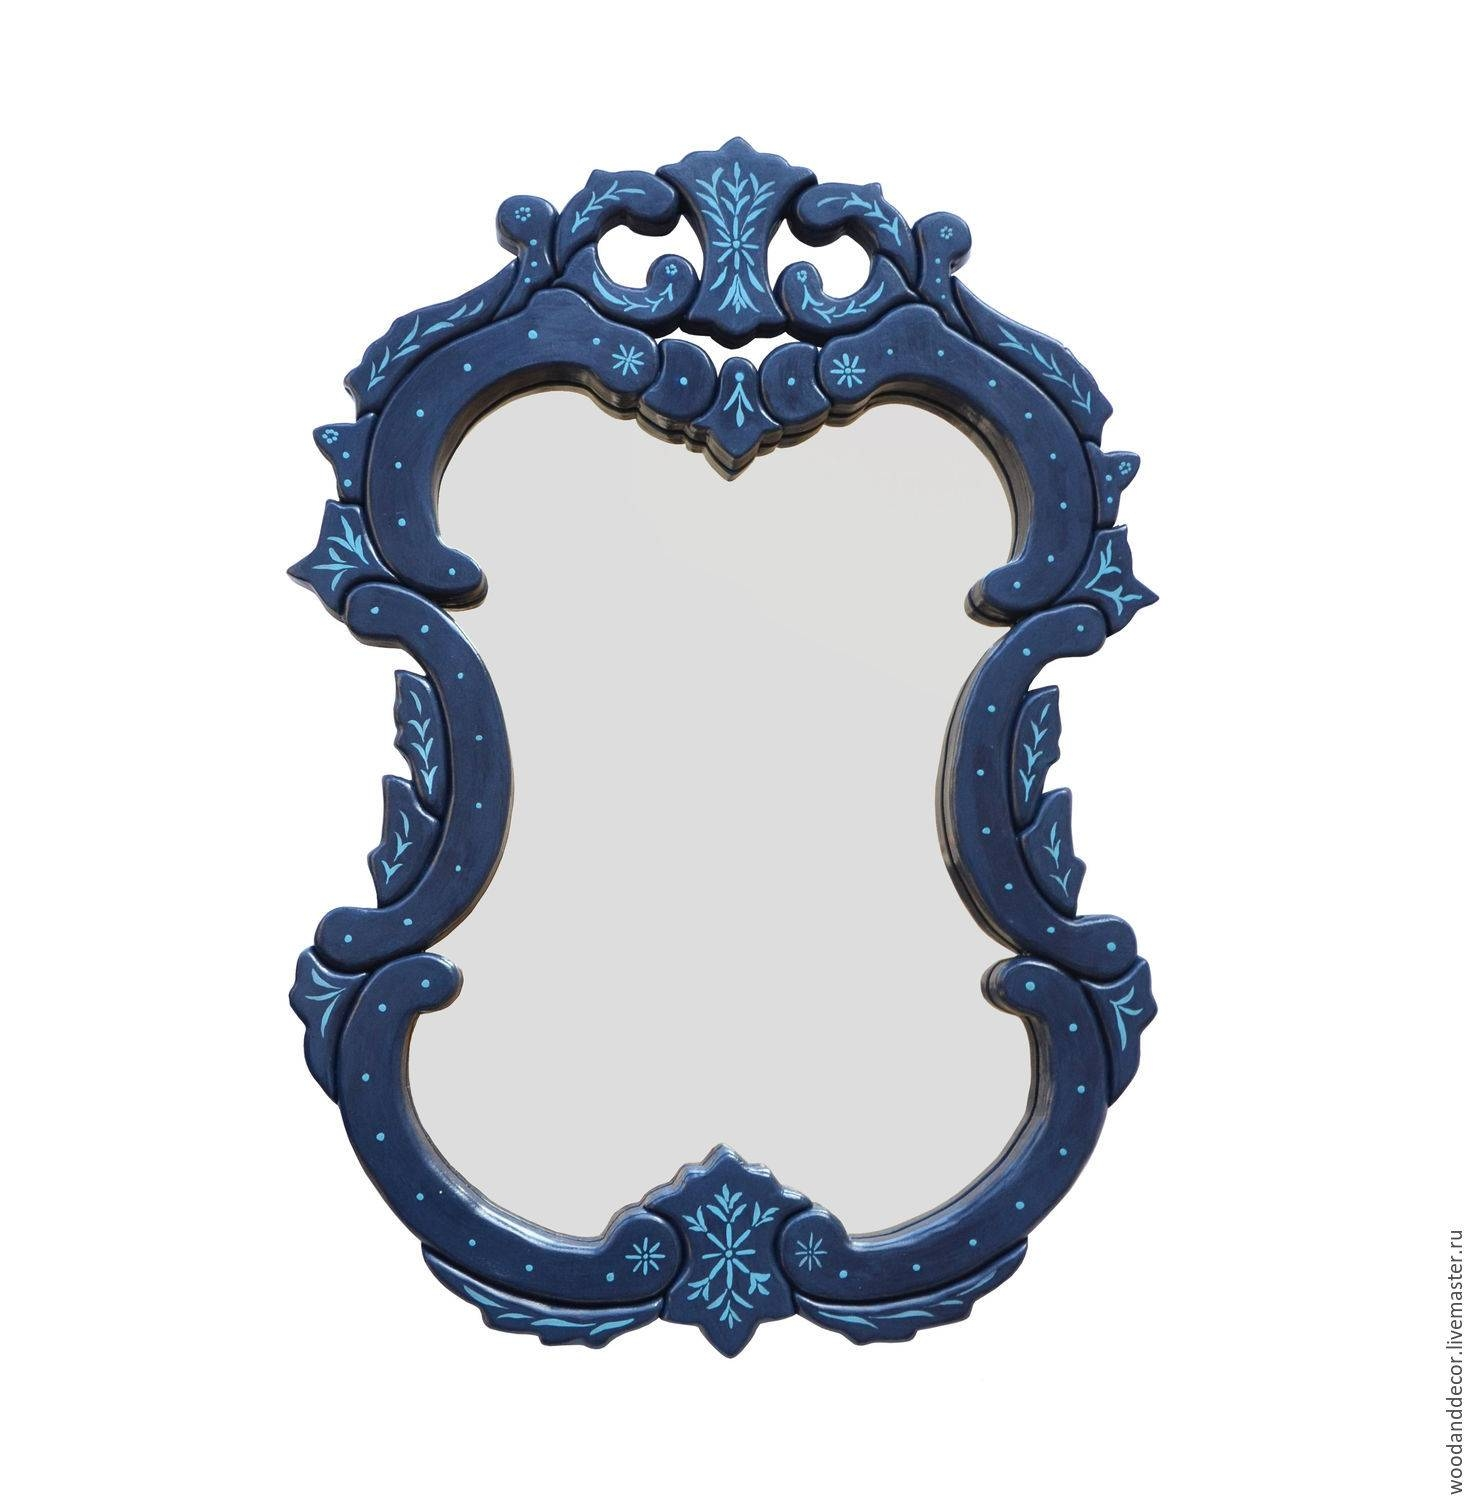 Buy Frame Mirror Blue - Blue, Frame, Mirror, Mirror Wall pertaining to Mirrors With Blue Frame (Image 10 of 25)